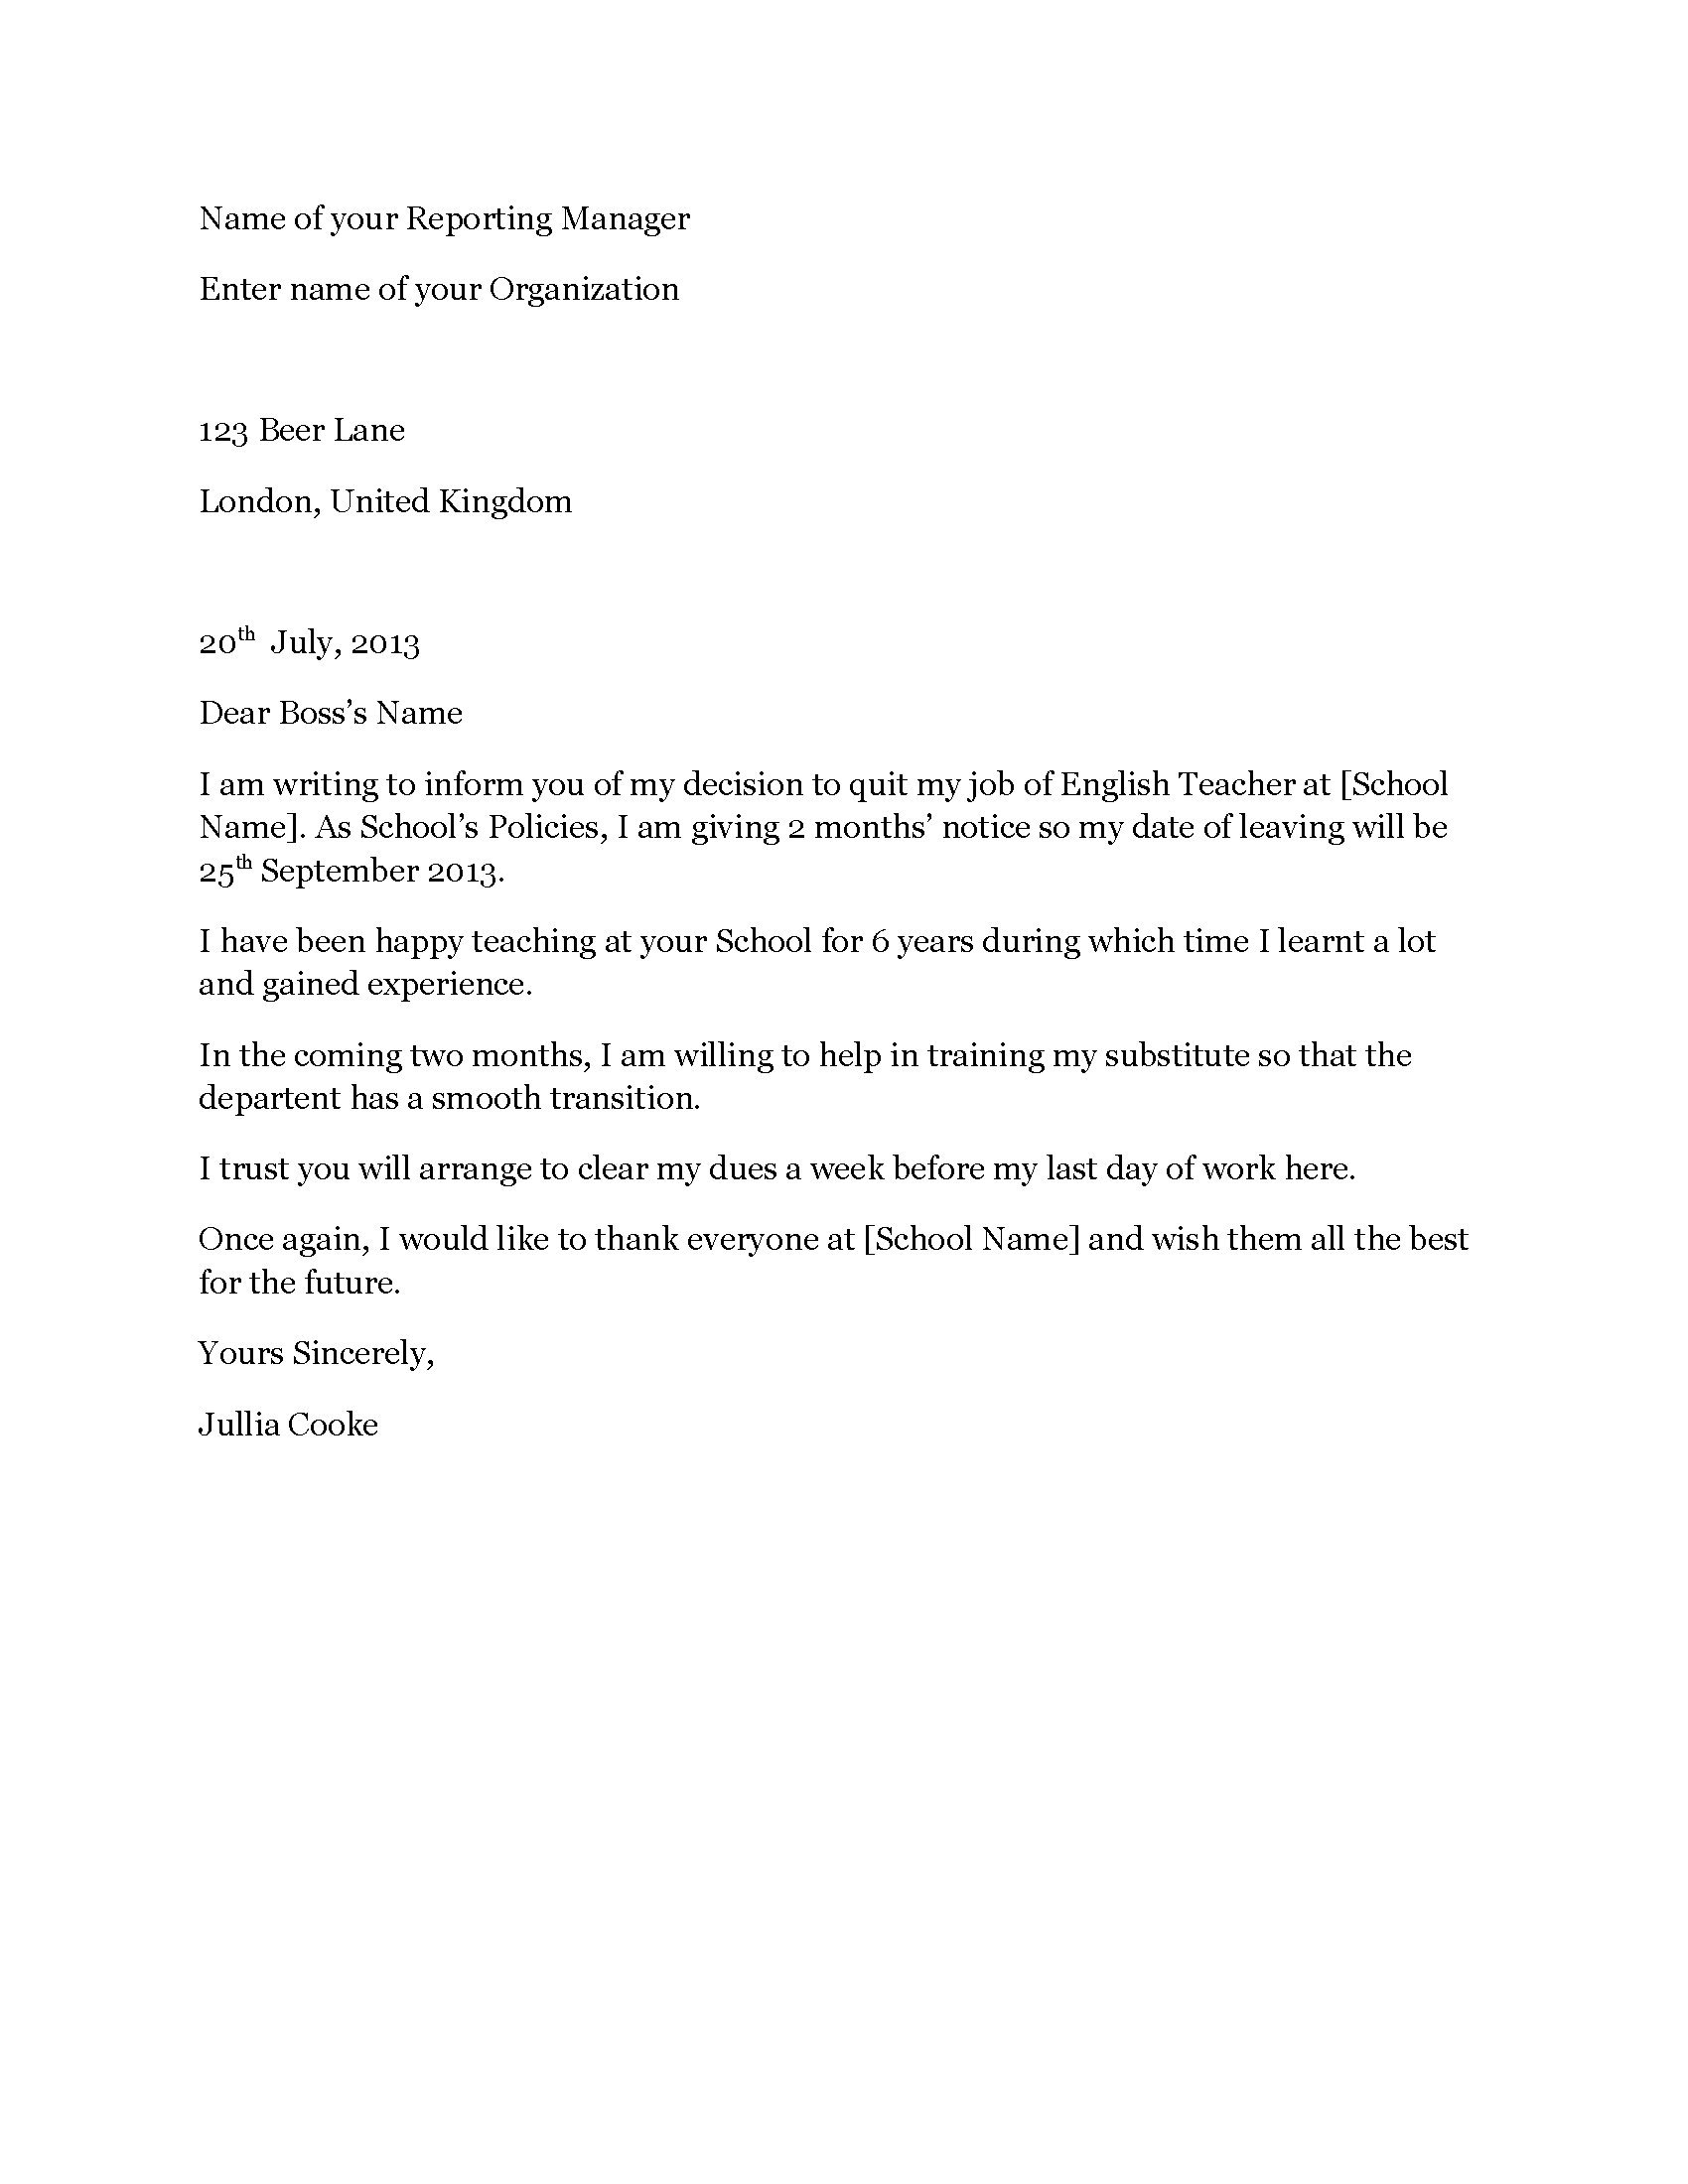 Teacher resignation letter uk accounts executive resume format resignation letter teacher resignation letter 3 wwwresignationletterscouk teacher resignation letter uk teacher resignation letter uk spiritdancerdesigns Image collections